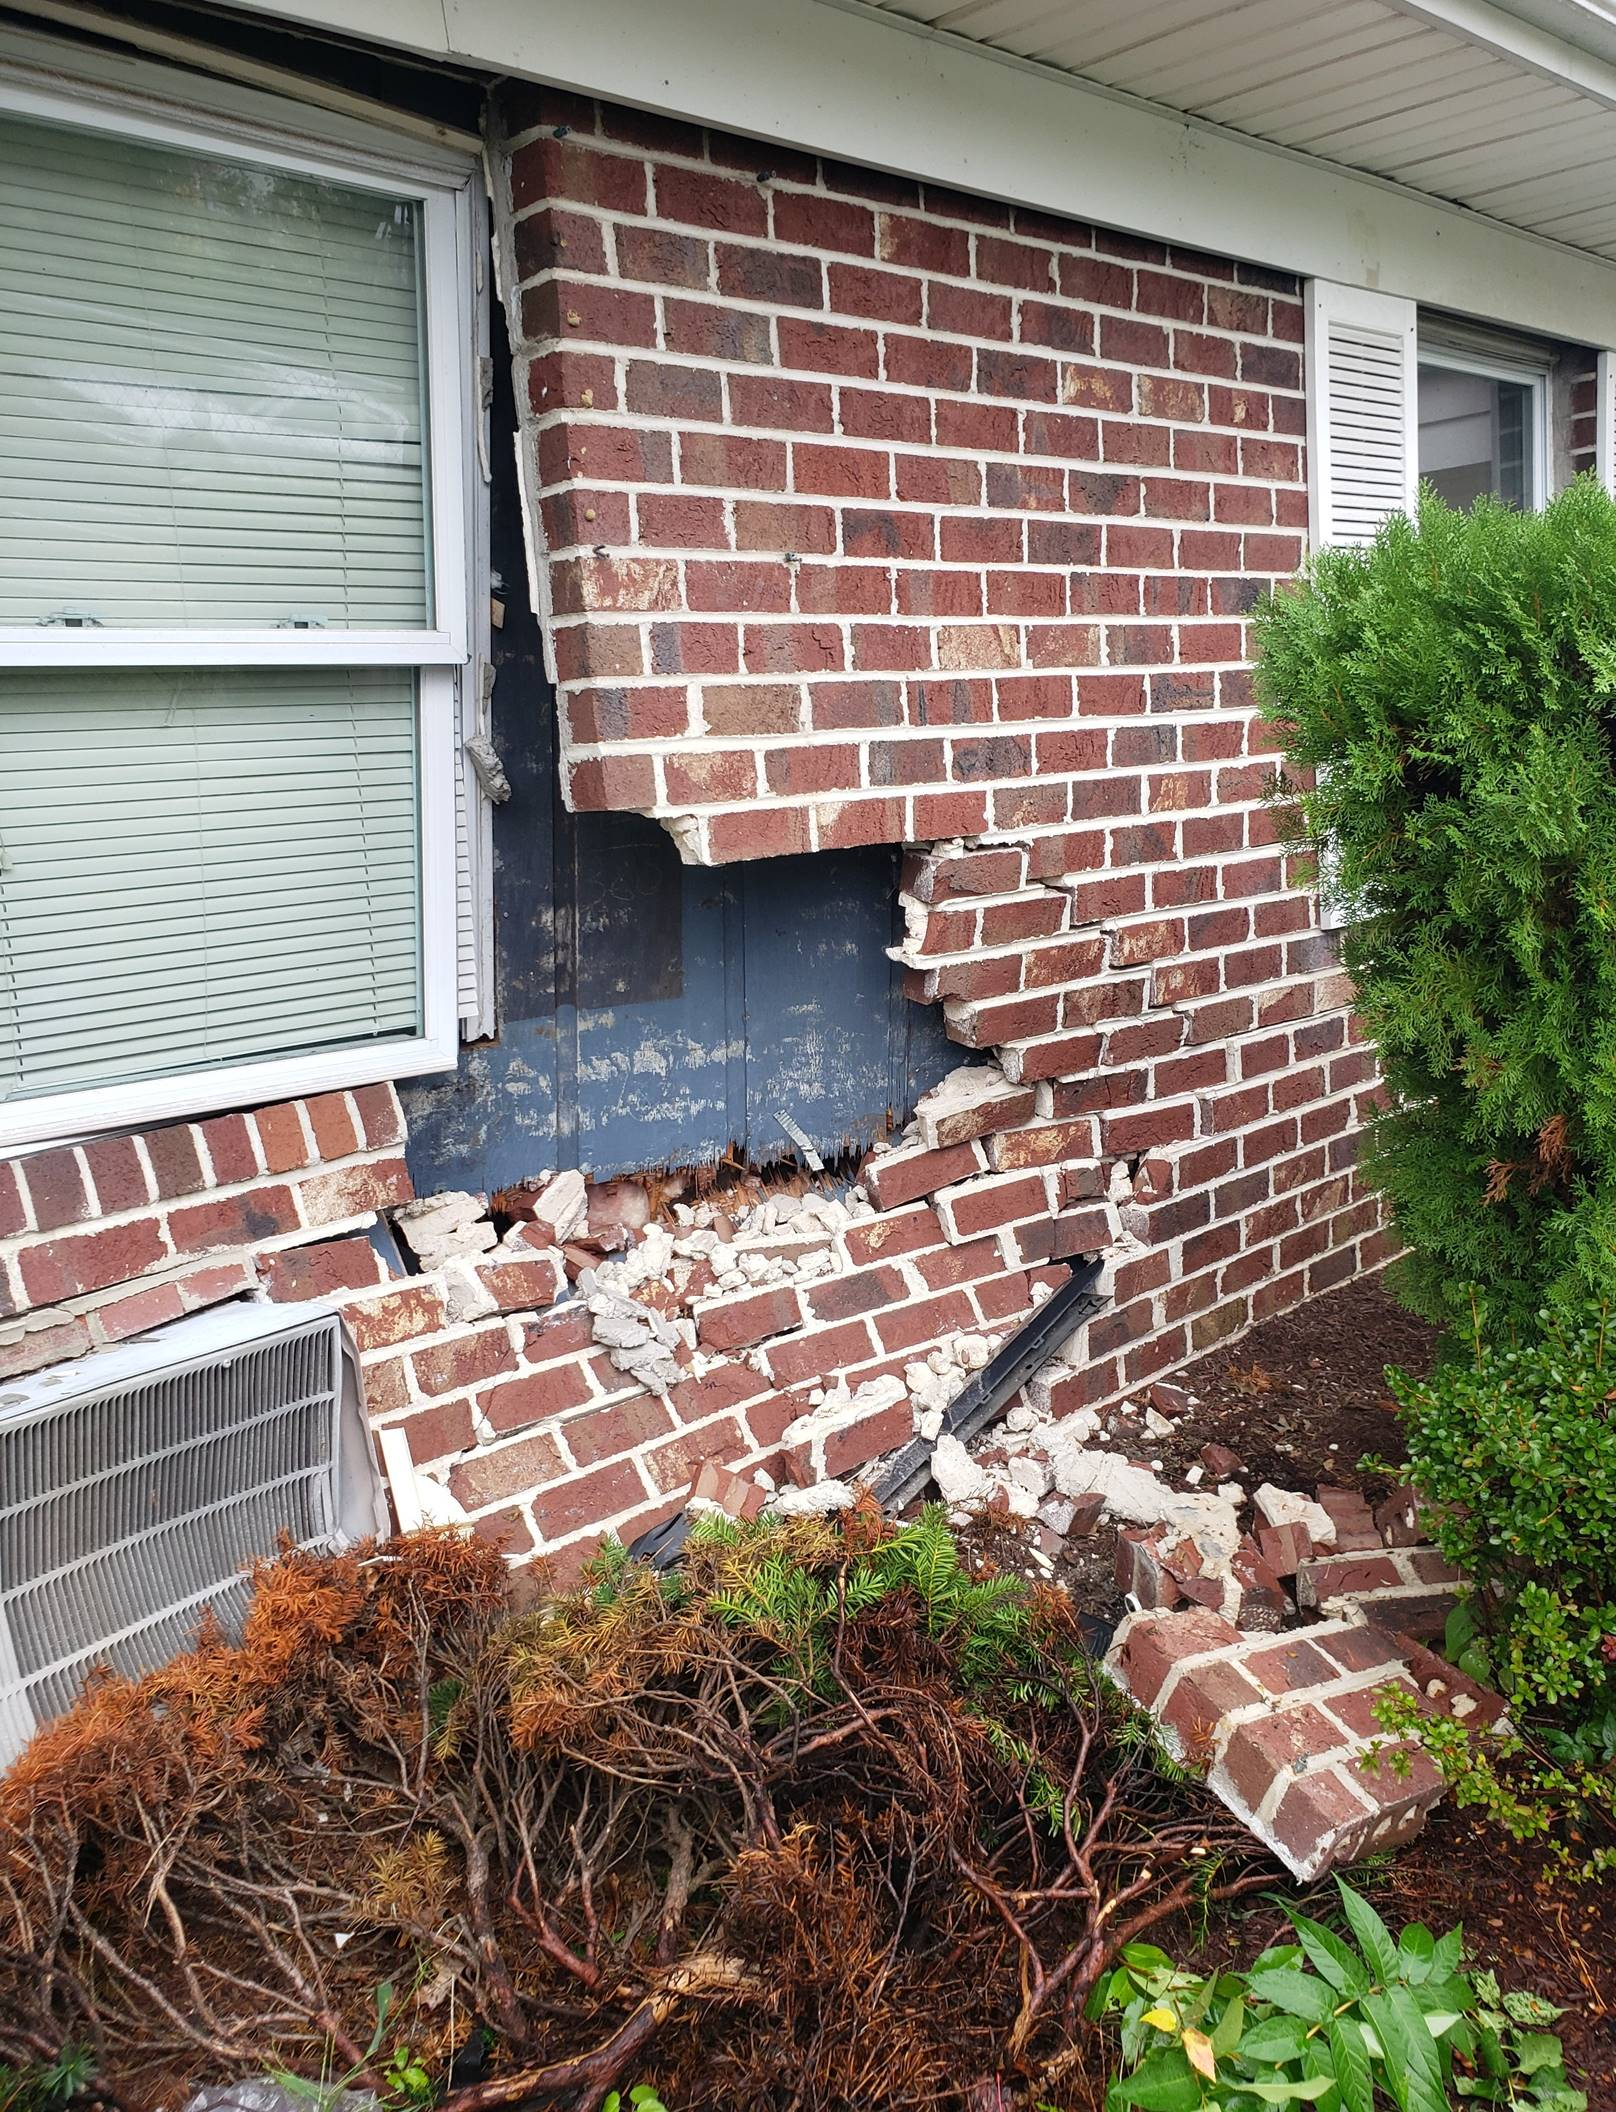 Smyth Repairs Oxford Village Condominums in Egg Harbor Township